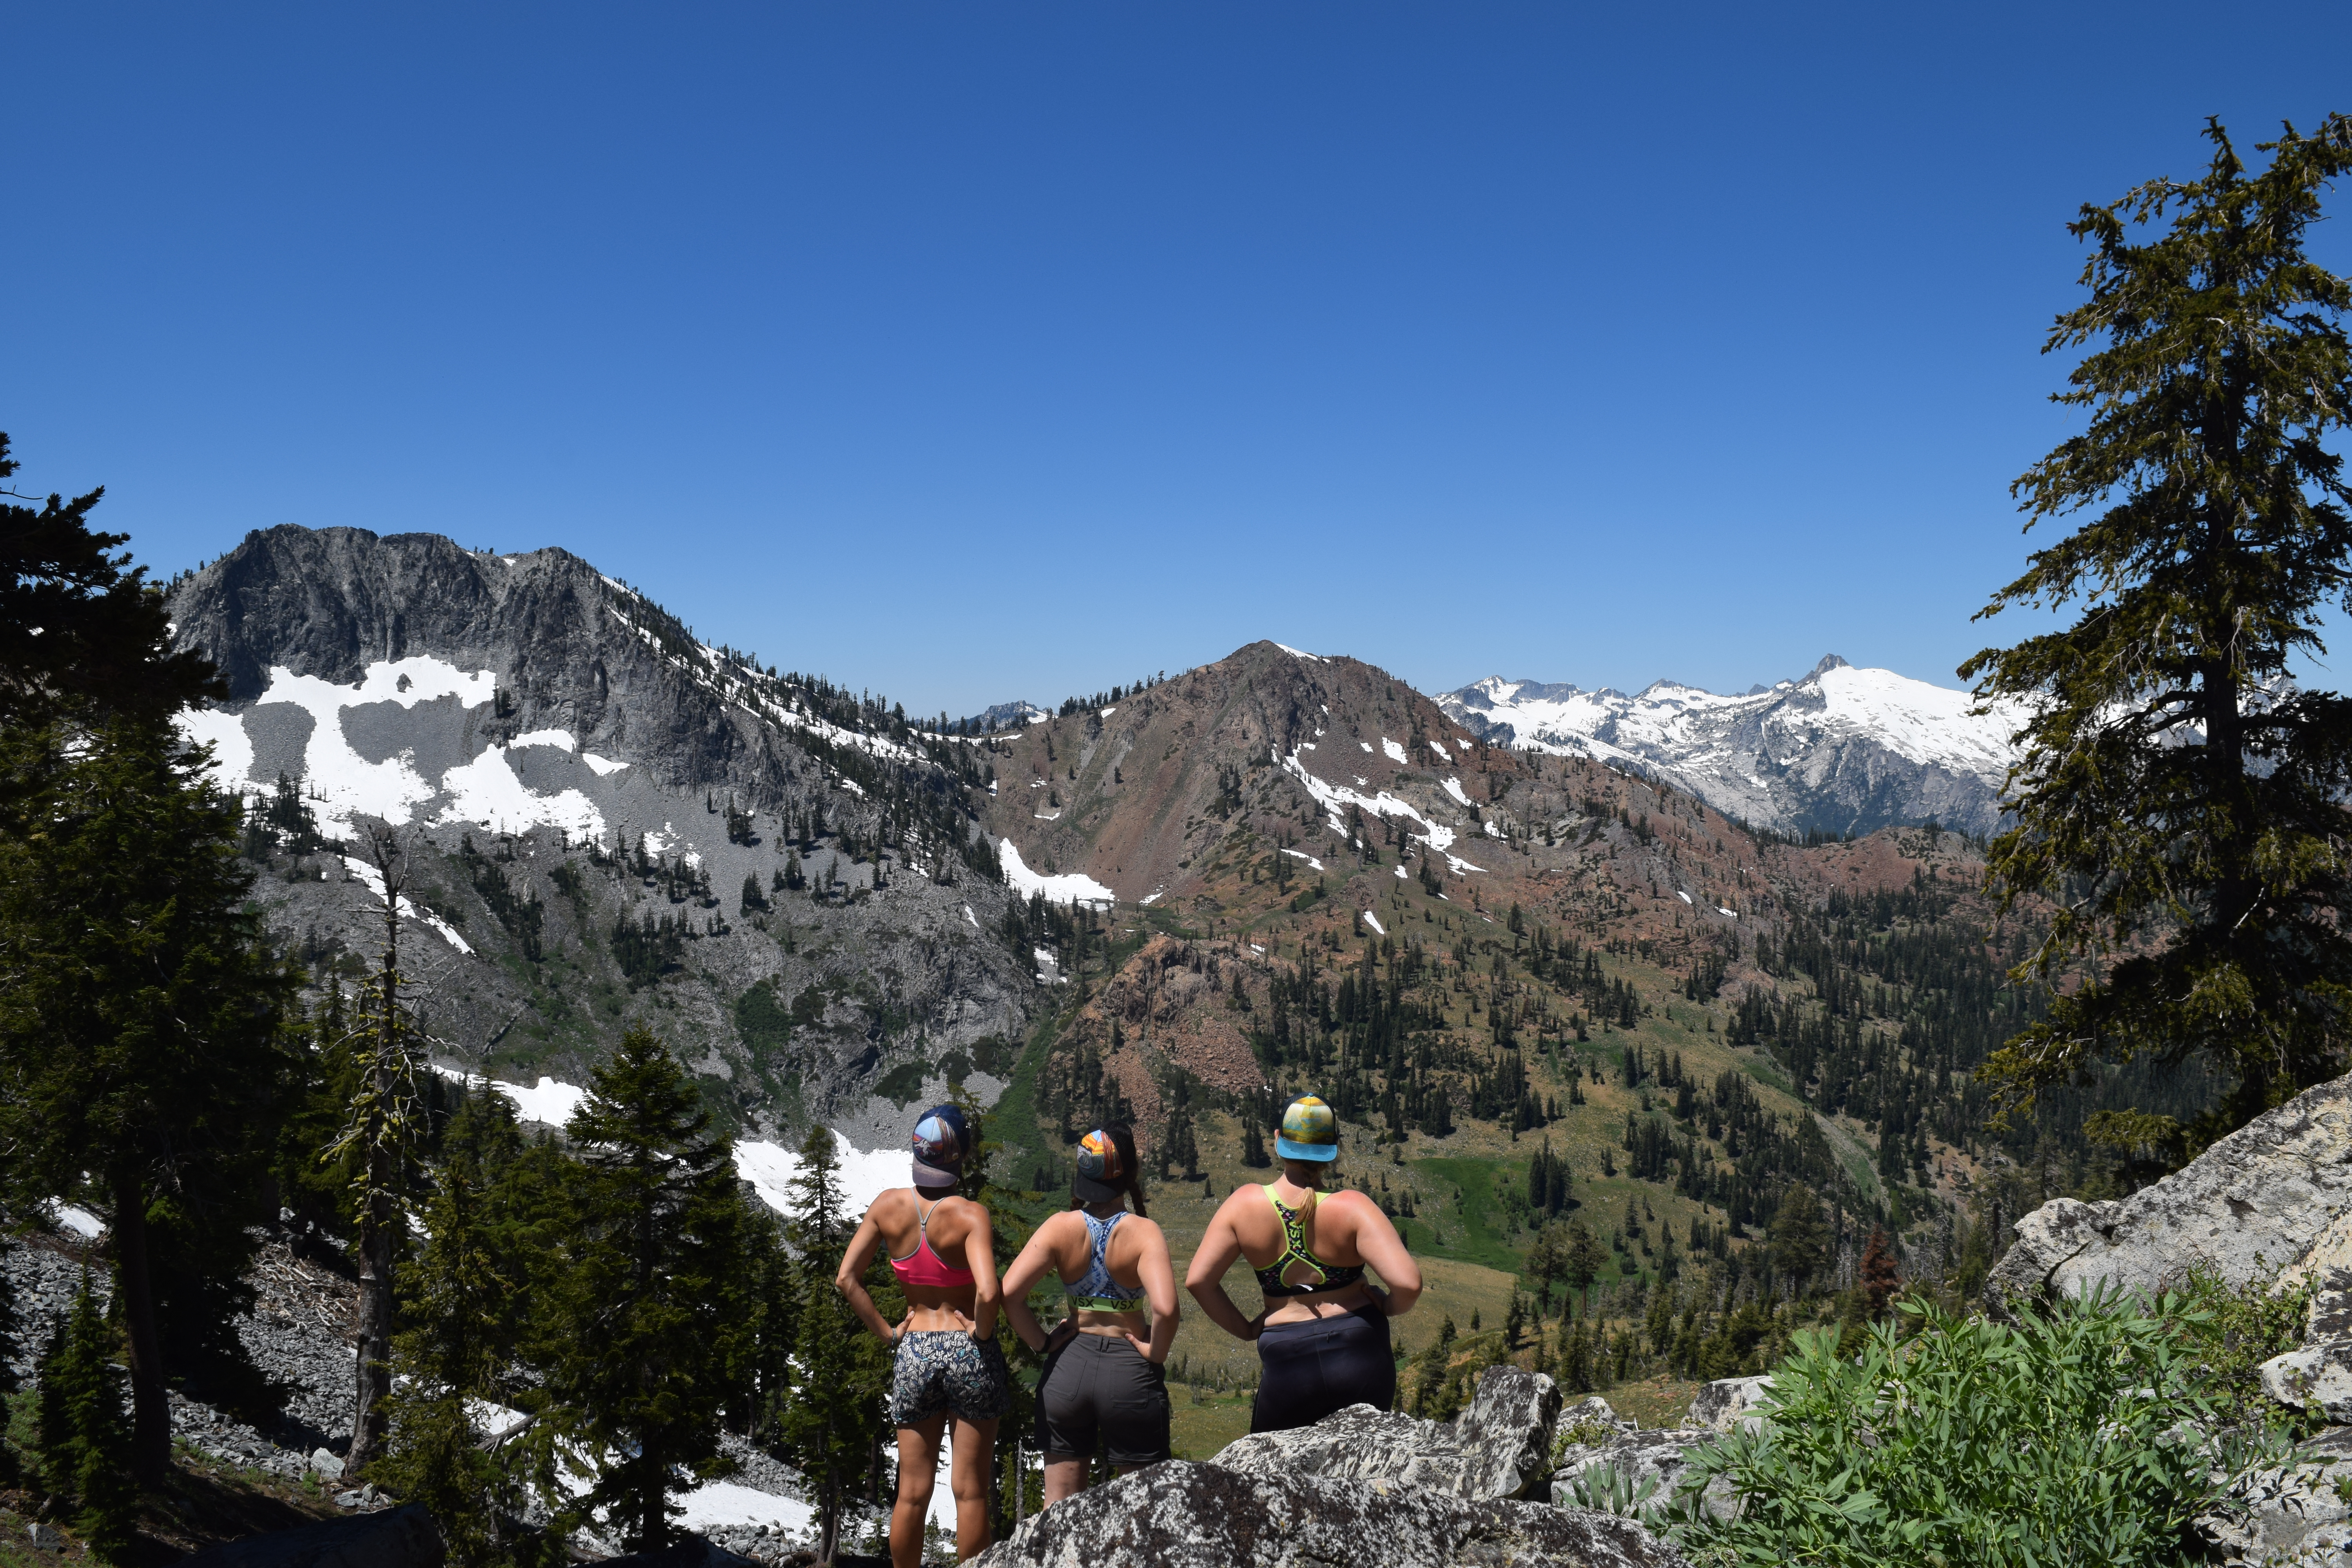 Three women in sports bras and shorts, looking out at a mountain basin whose rock types correspond very well to the above geologic map.